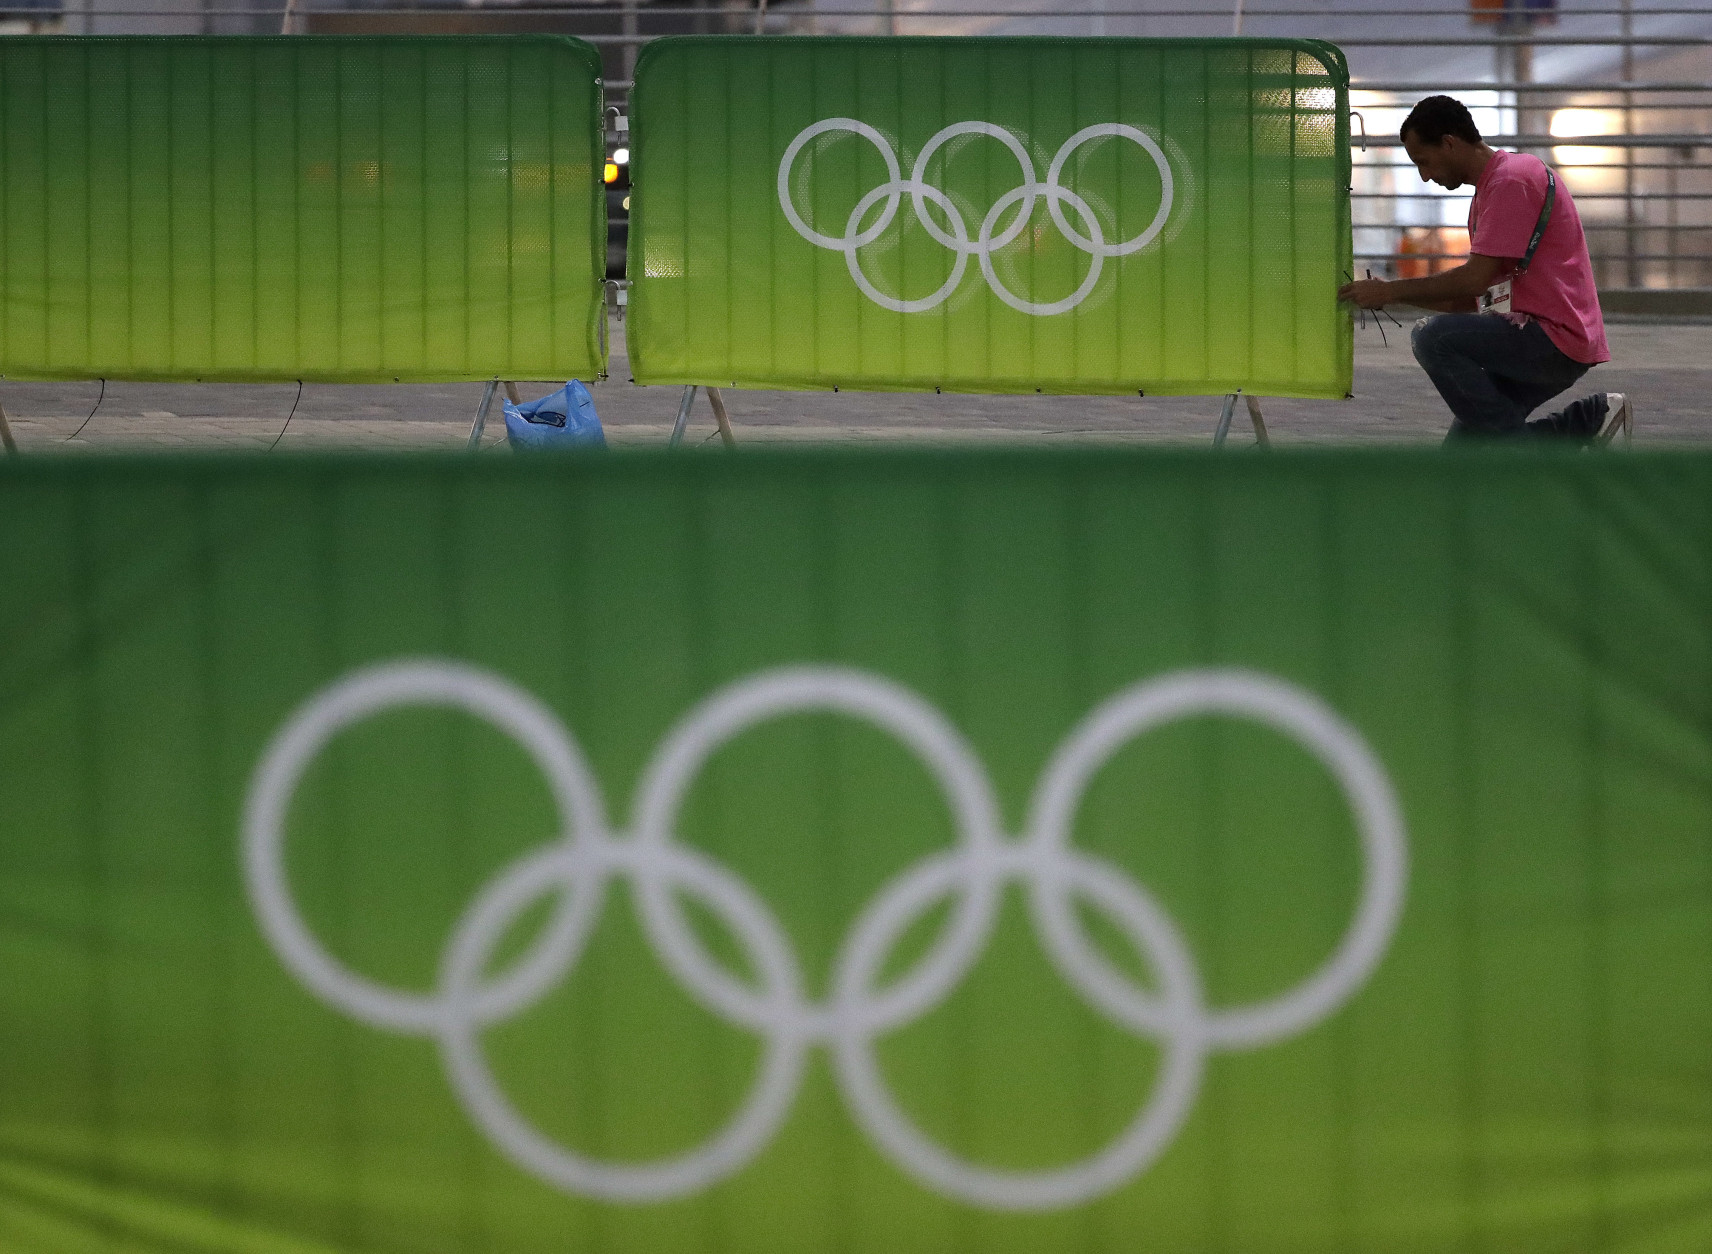 A worker fastens signage to a barrier in the Olympic Park as preparations continue for the Summer 2016 Olympics in Rio de Janeiro, Brazil, Wednesday, Aug. 3, 2016. The Summer 2016 Olympics is scheduled to open Aug. 5. (AP Photo/Charlie Riedel)